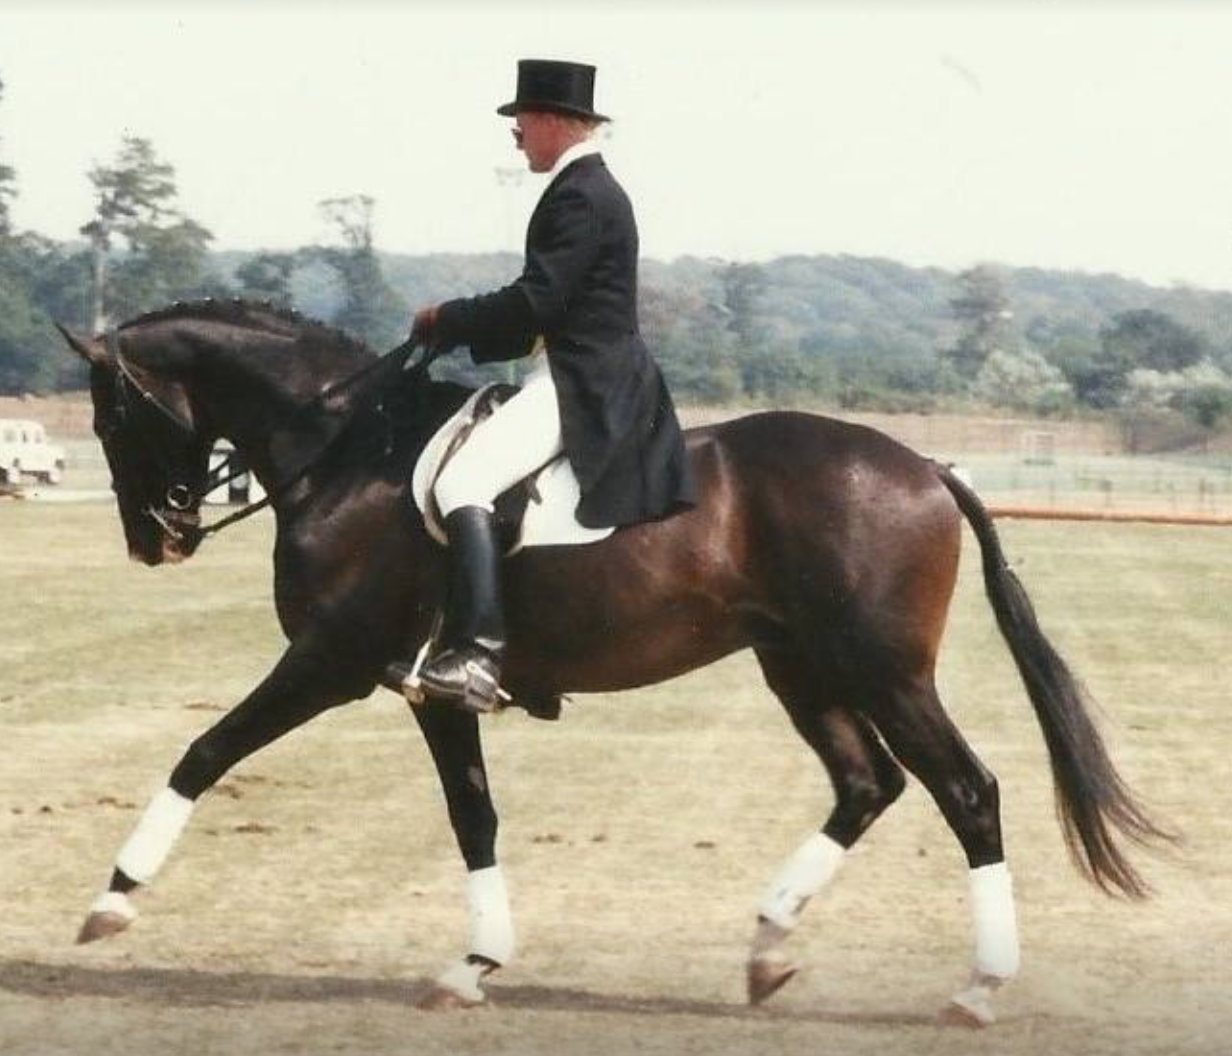 Aart Noordijk BHSI has spent many years training horses and riders of a variety of disciplines.